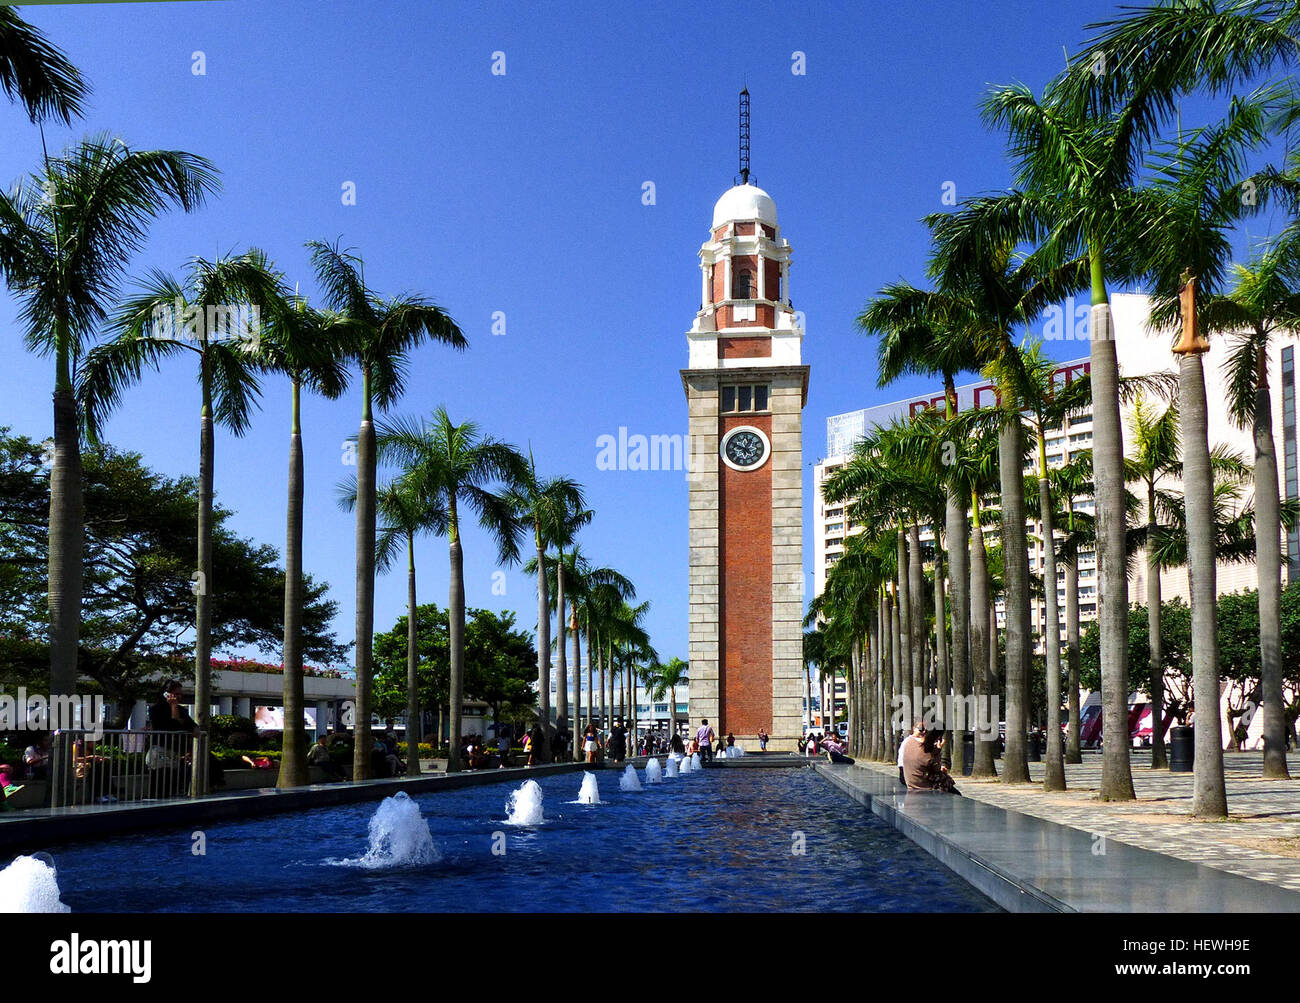 Standing 44-metres tall, the old Clock Tower was erected in 1915 as part of the Kowloon–Canton Railway terminus. - Stock Image